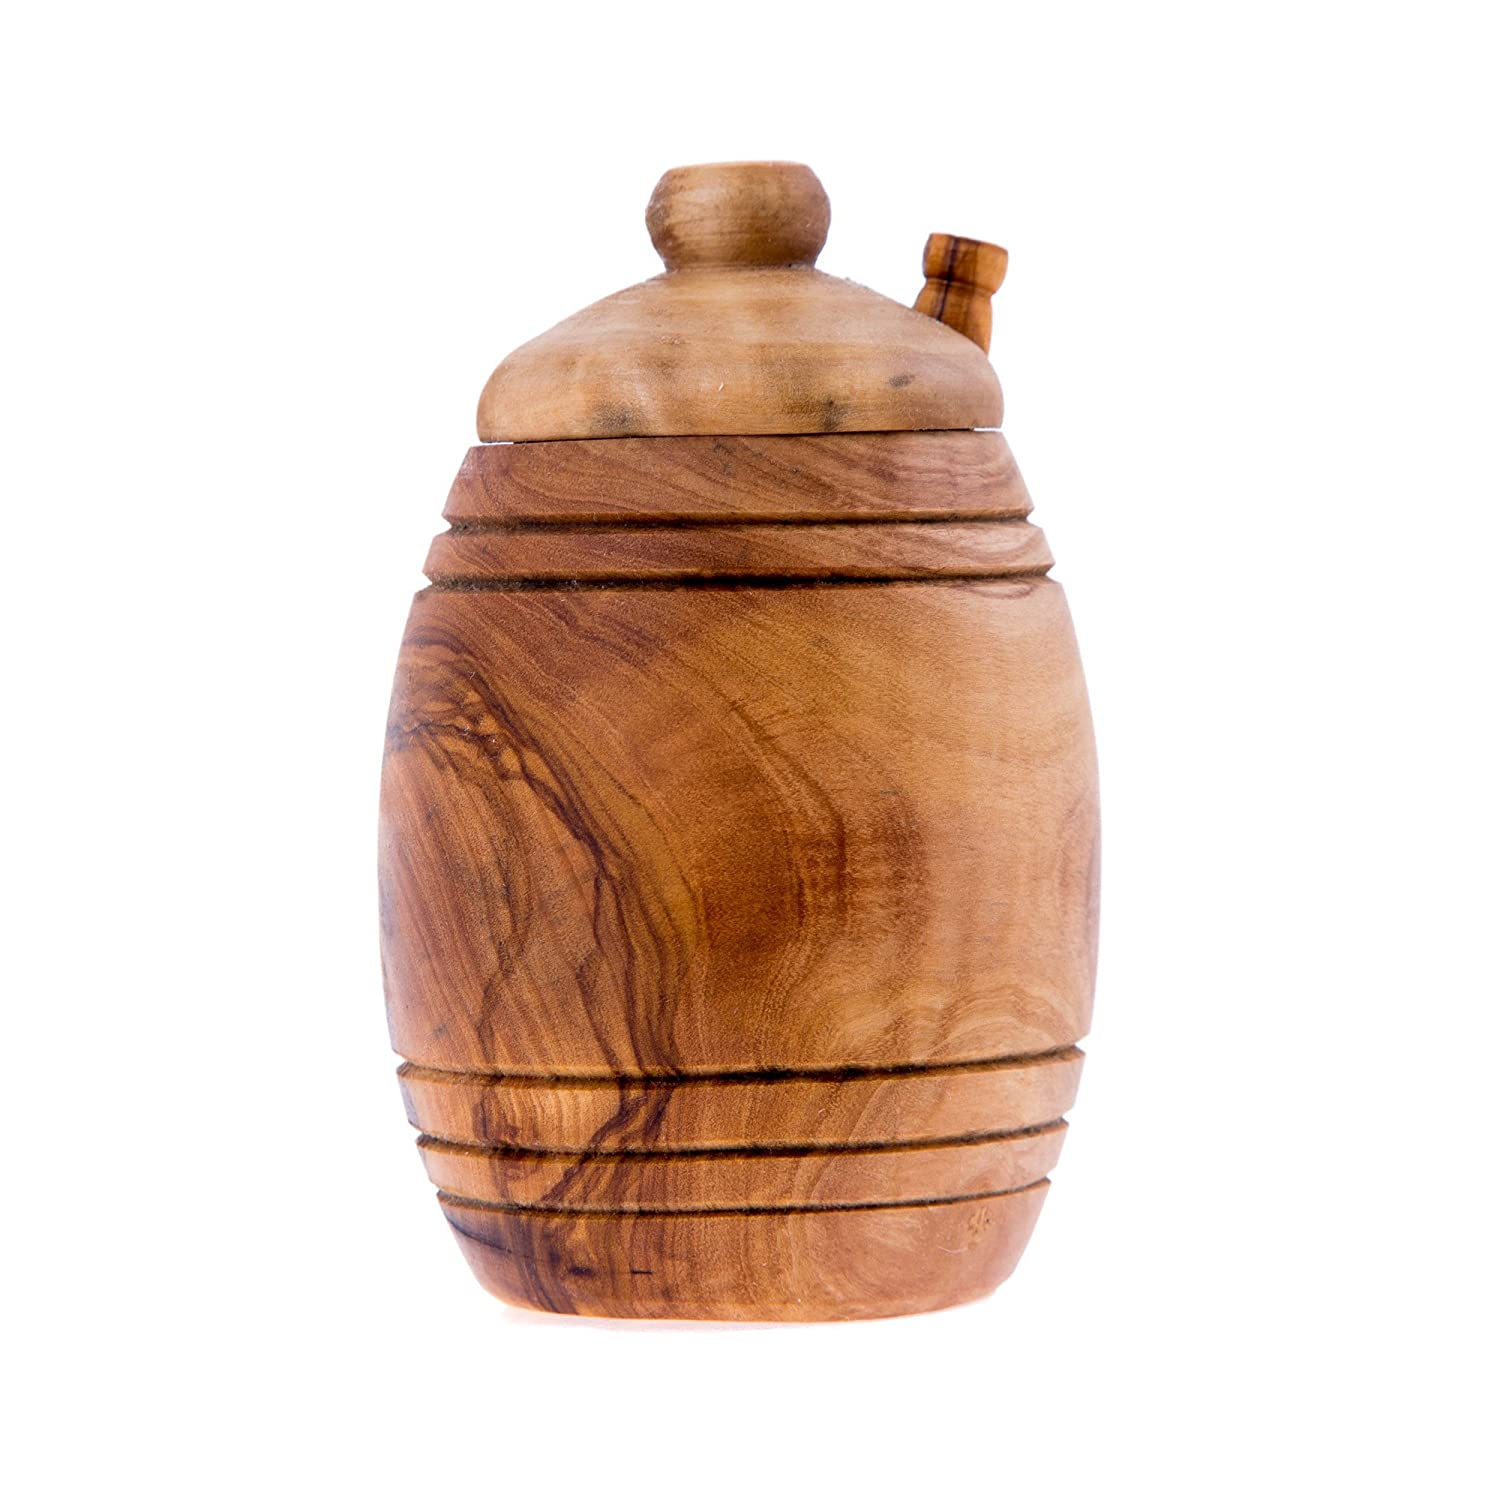 Honey Pot or Jar With Dipper Olive Wood Handmade - 156 ml (5.3 ounce) by Elitecrafters